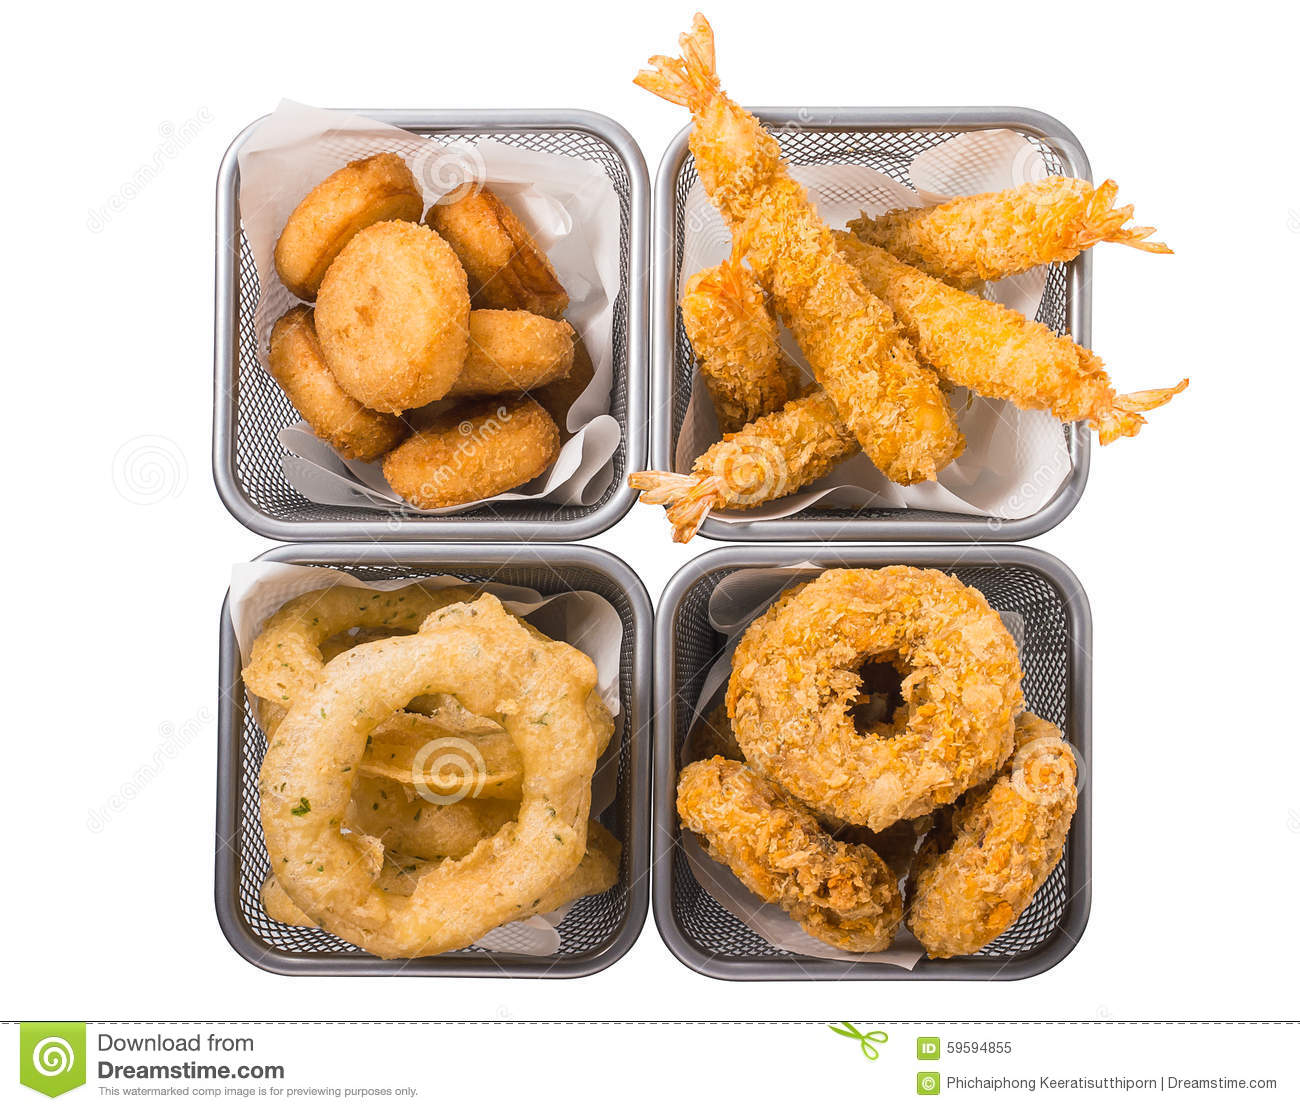 Mussel, shrimps, onion ring, squid ring, deep fries